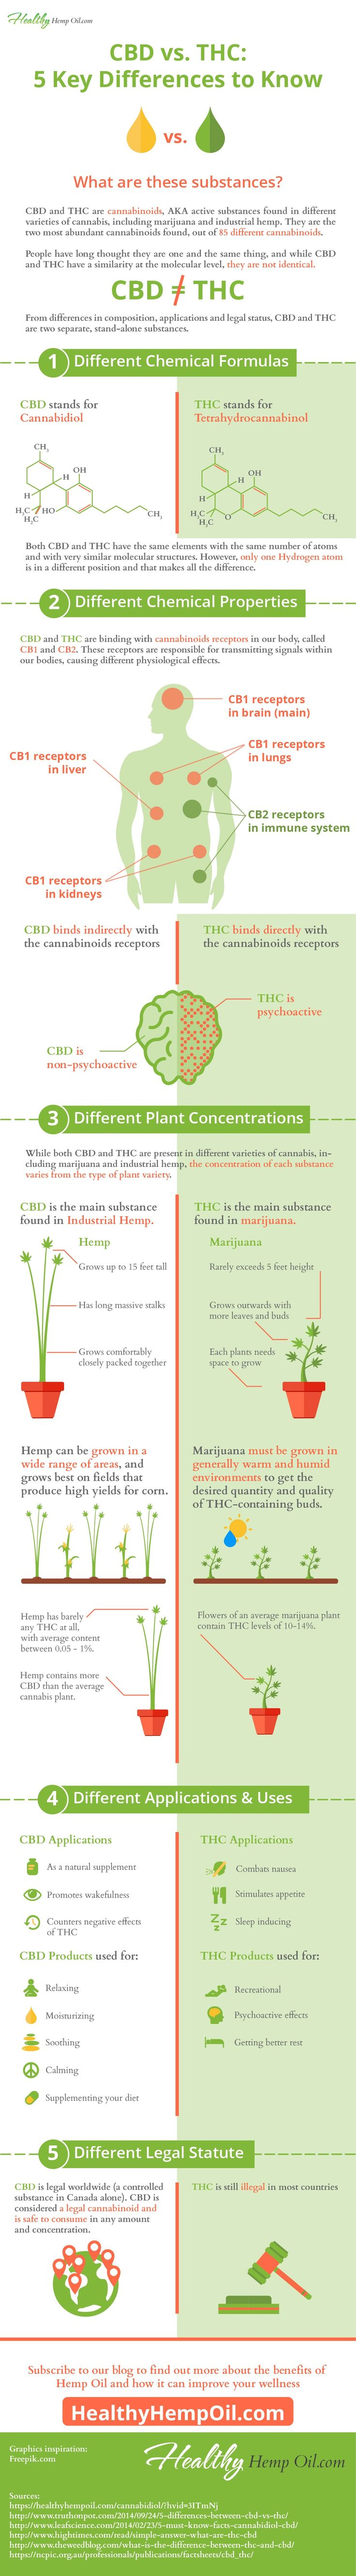 CBD vs THC - Healthy Hemp Oil.com